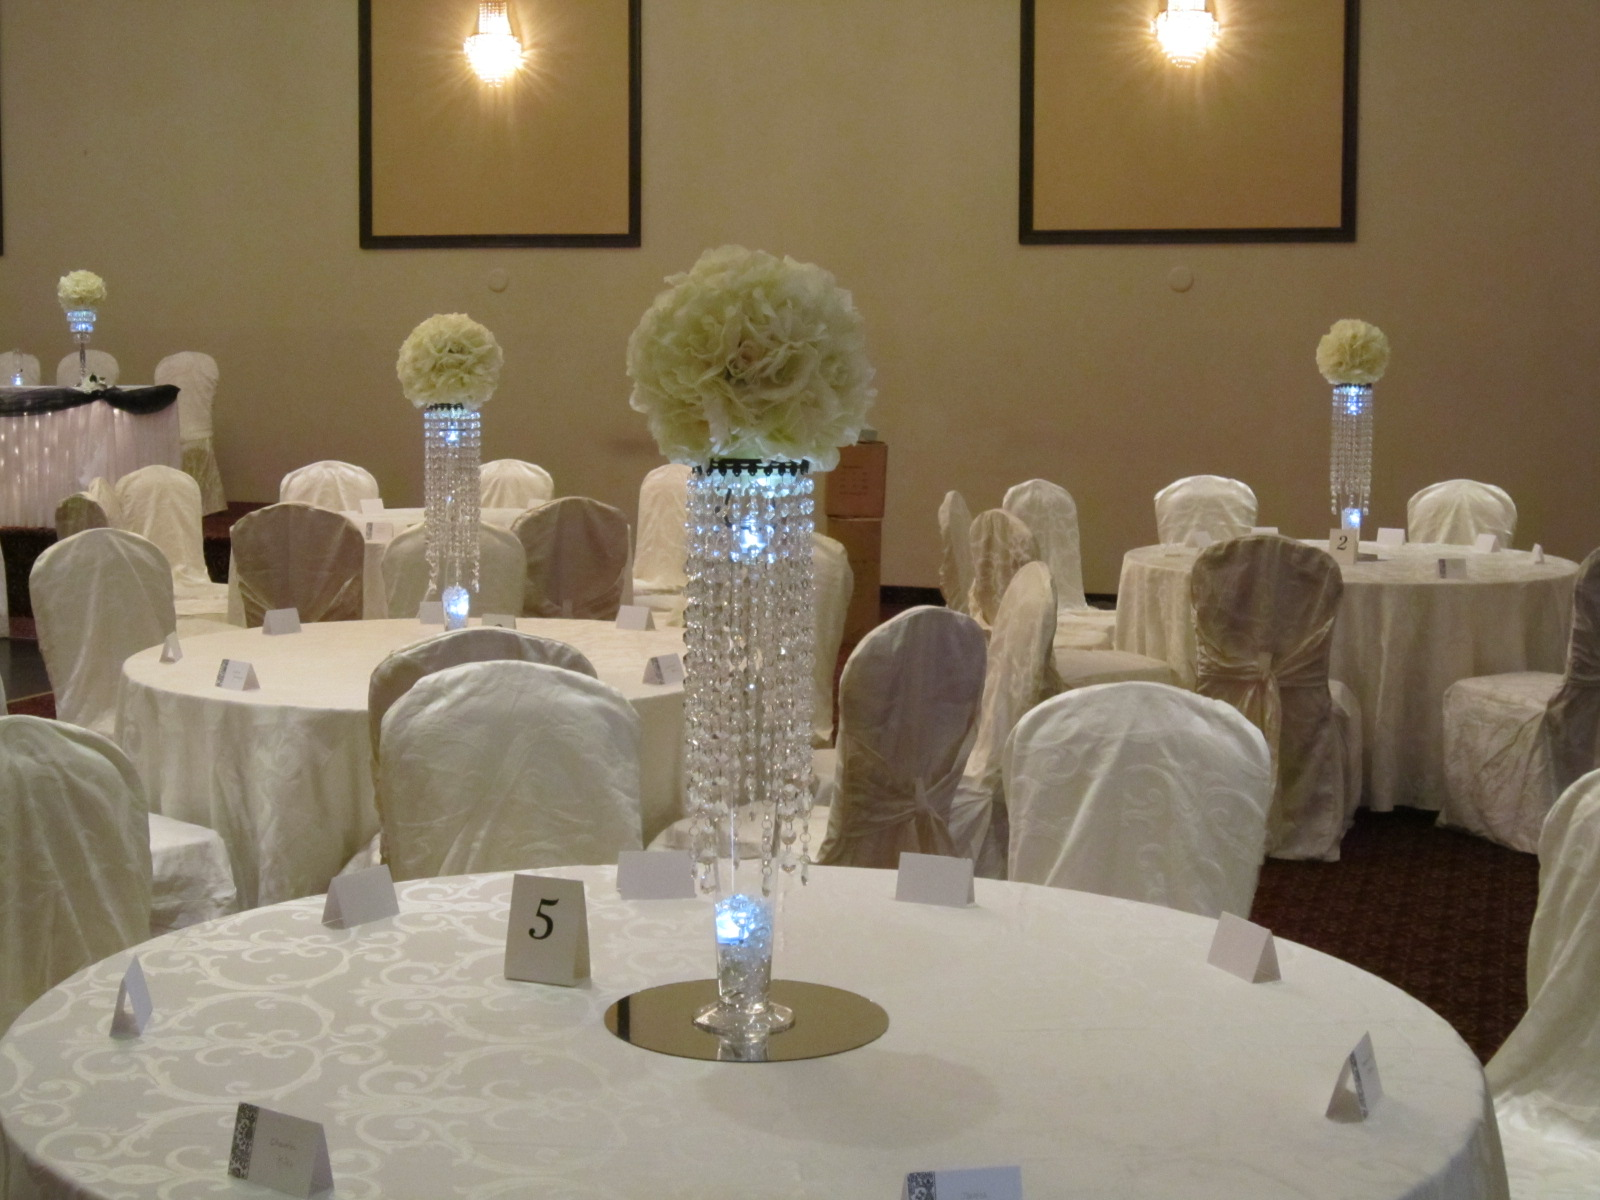 Crystal Decorations For Home Crystal Centerpieces At Weddings Set The Mood Decor